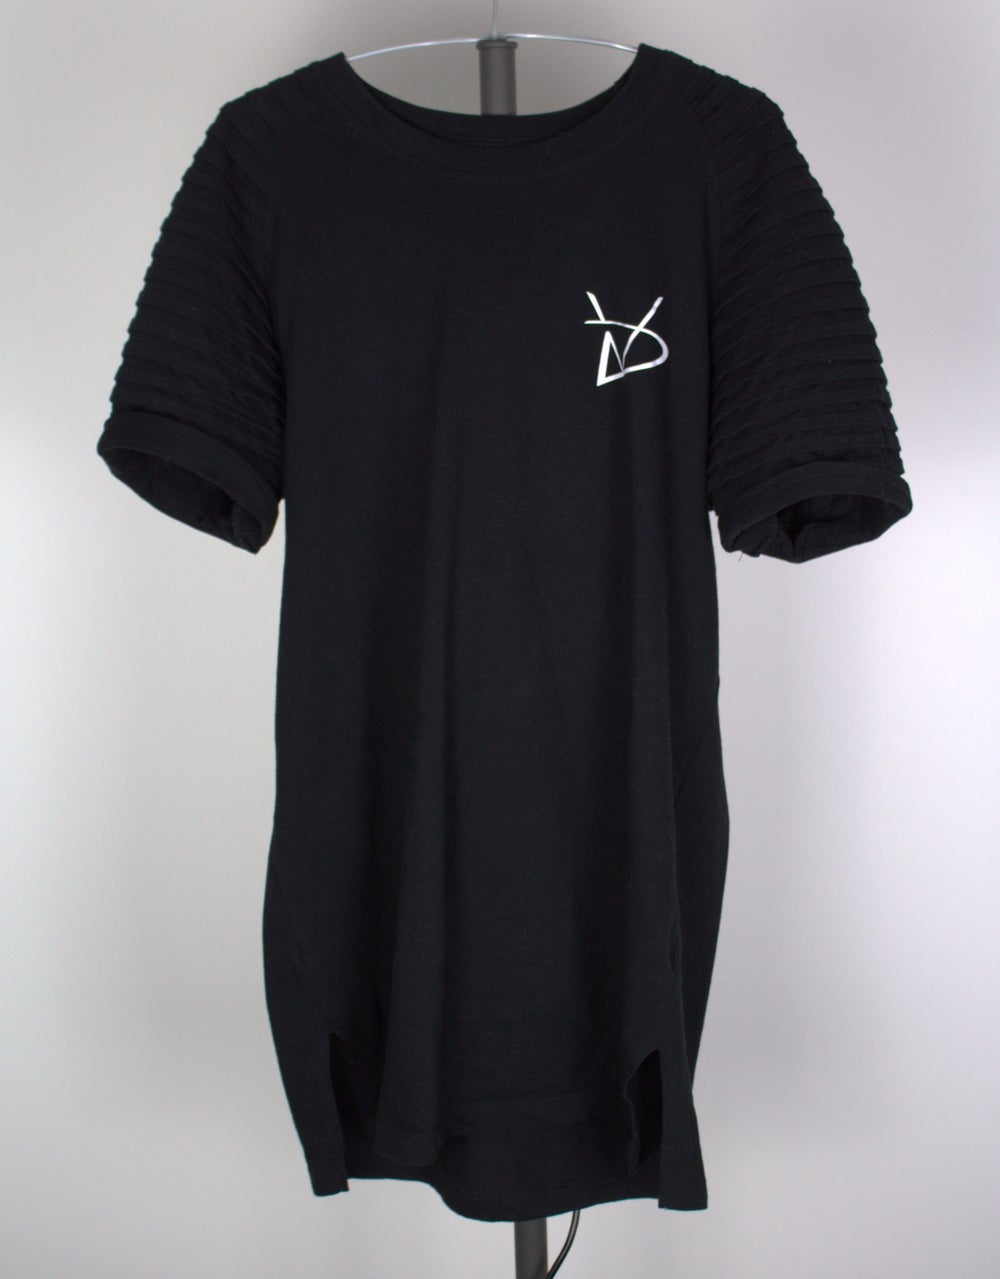 Image of Lion Shirt BLK/GRN